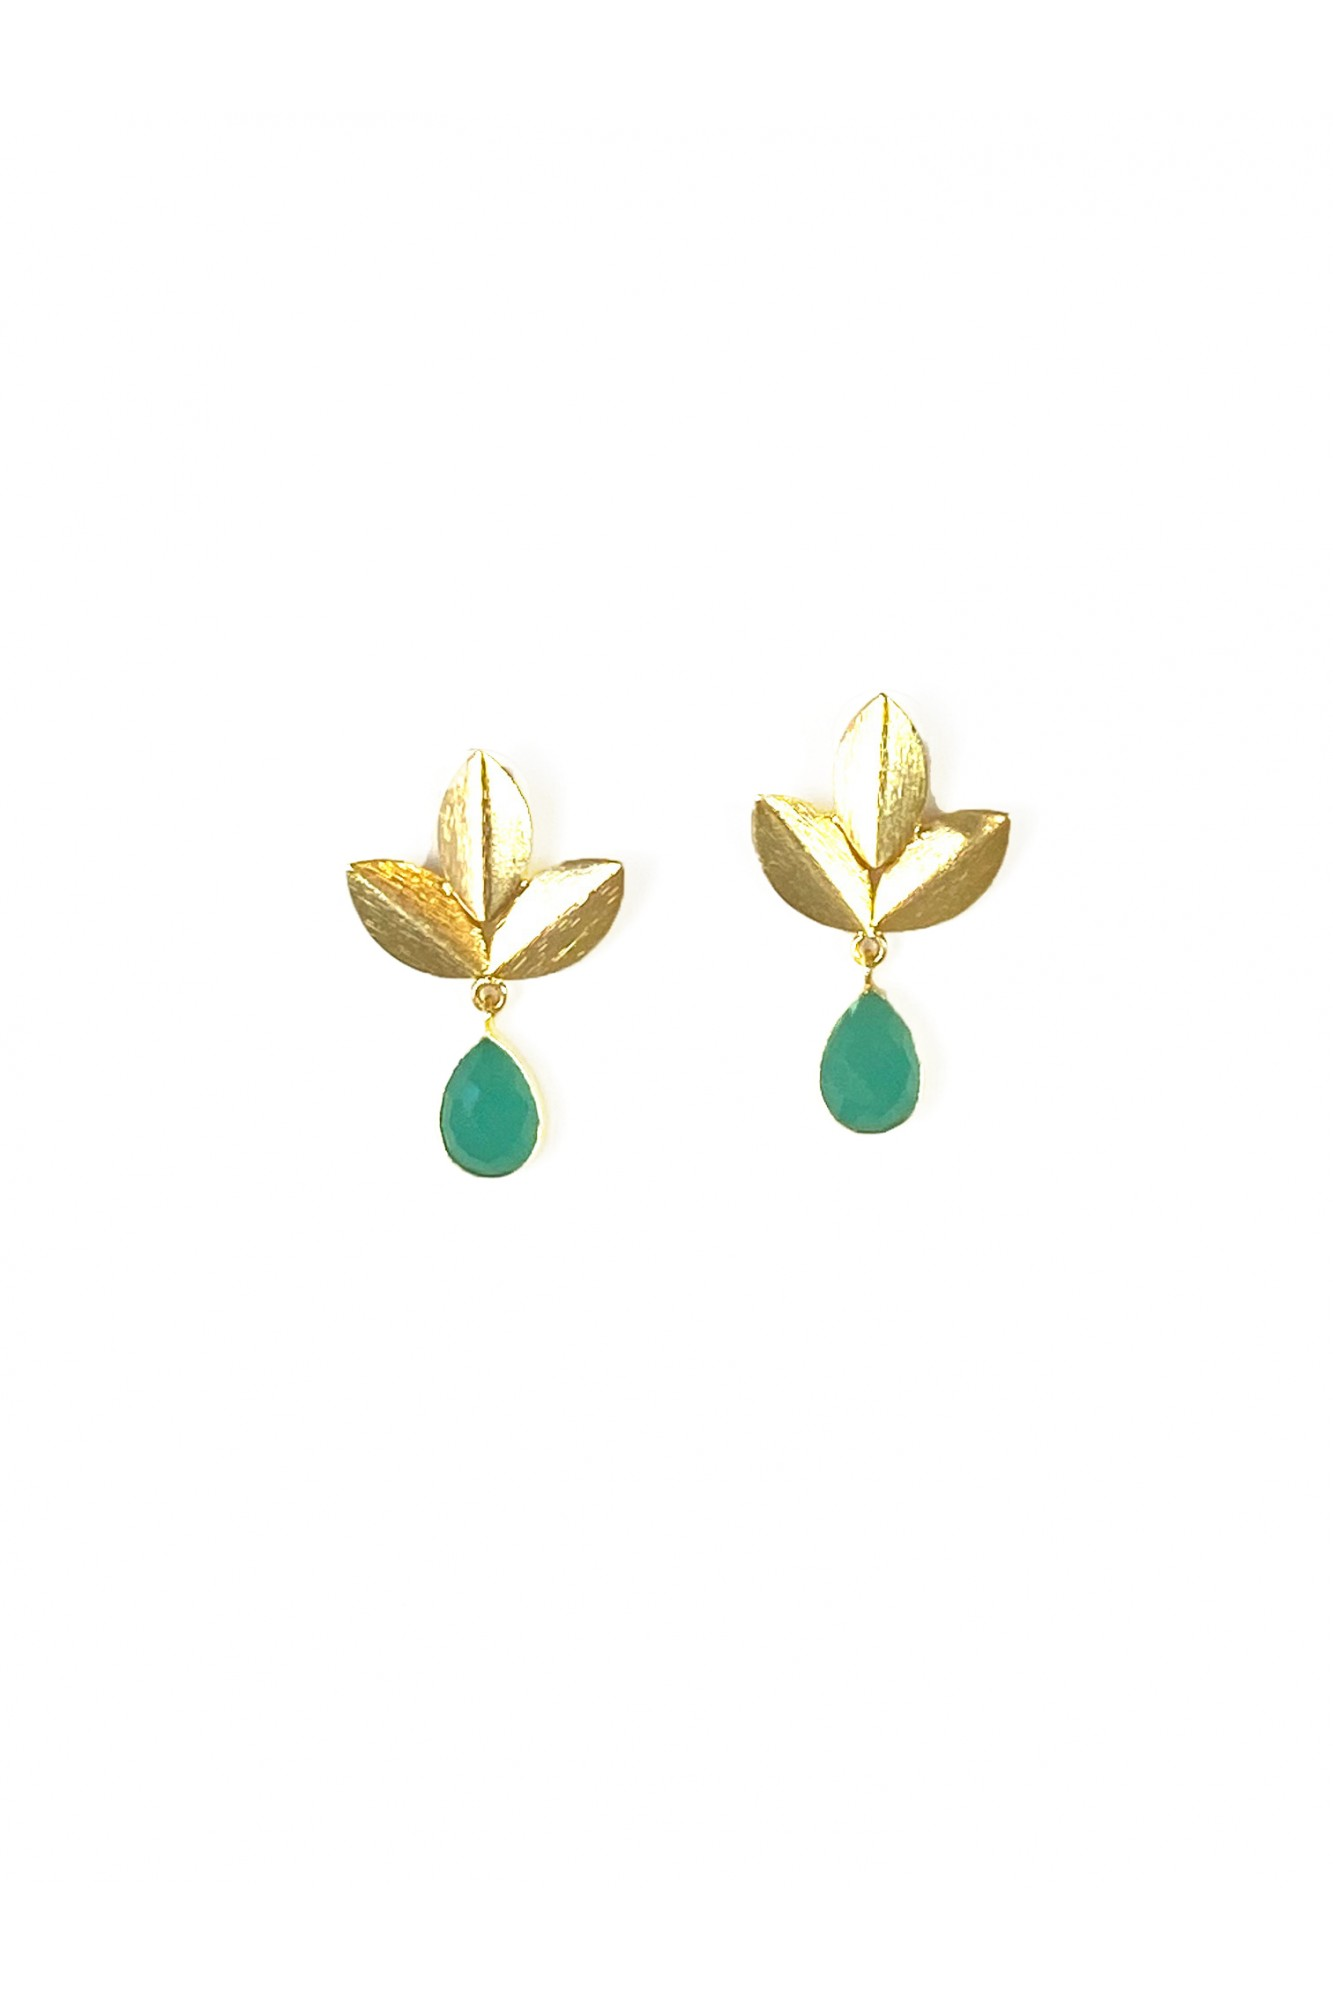 MINT NUIT EARRINGS